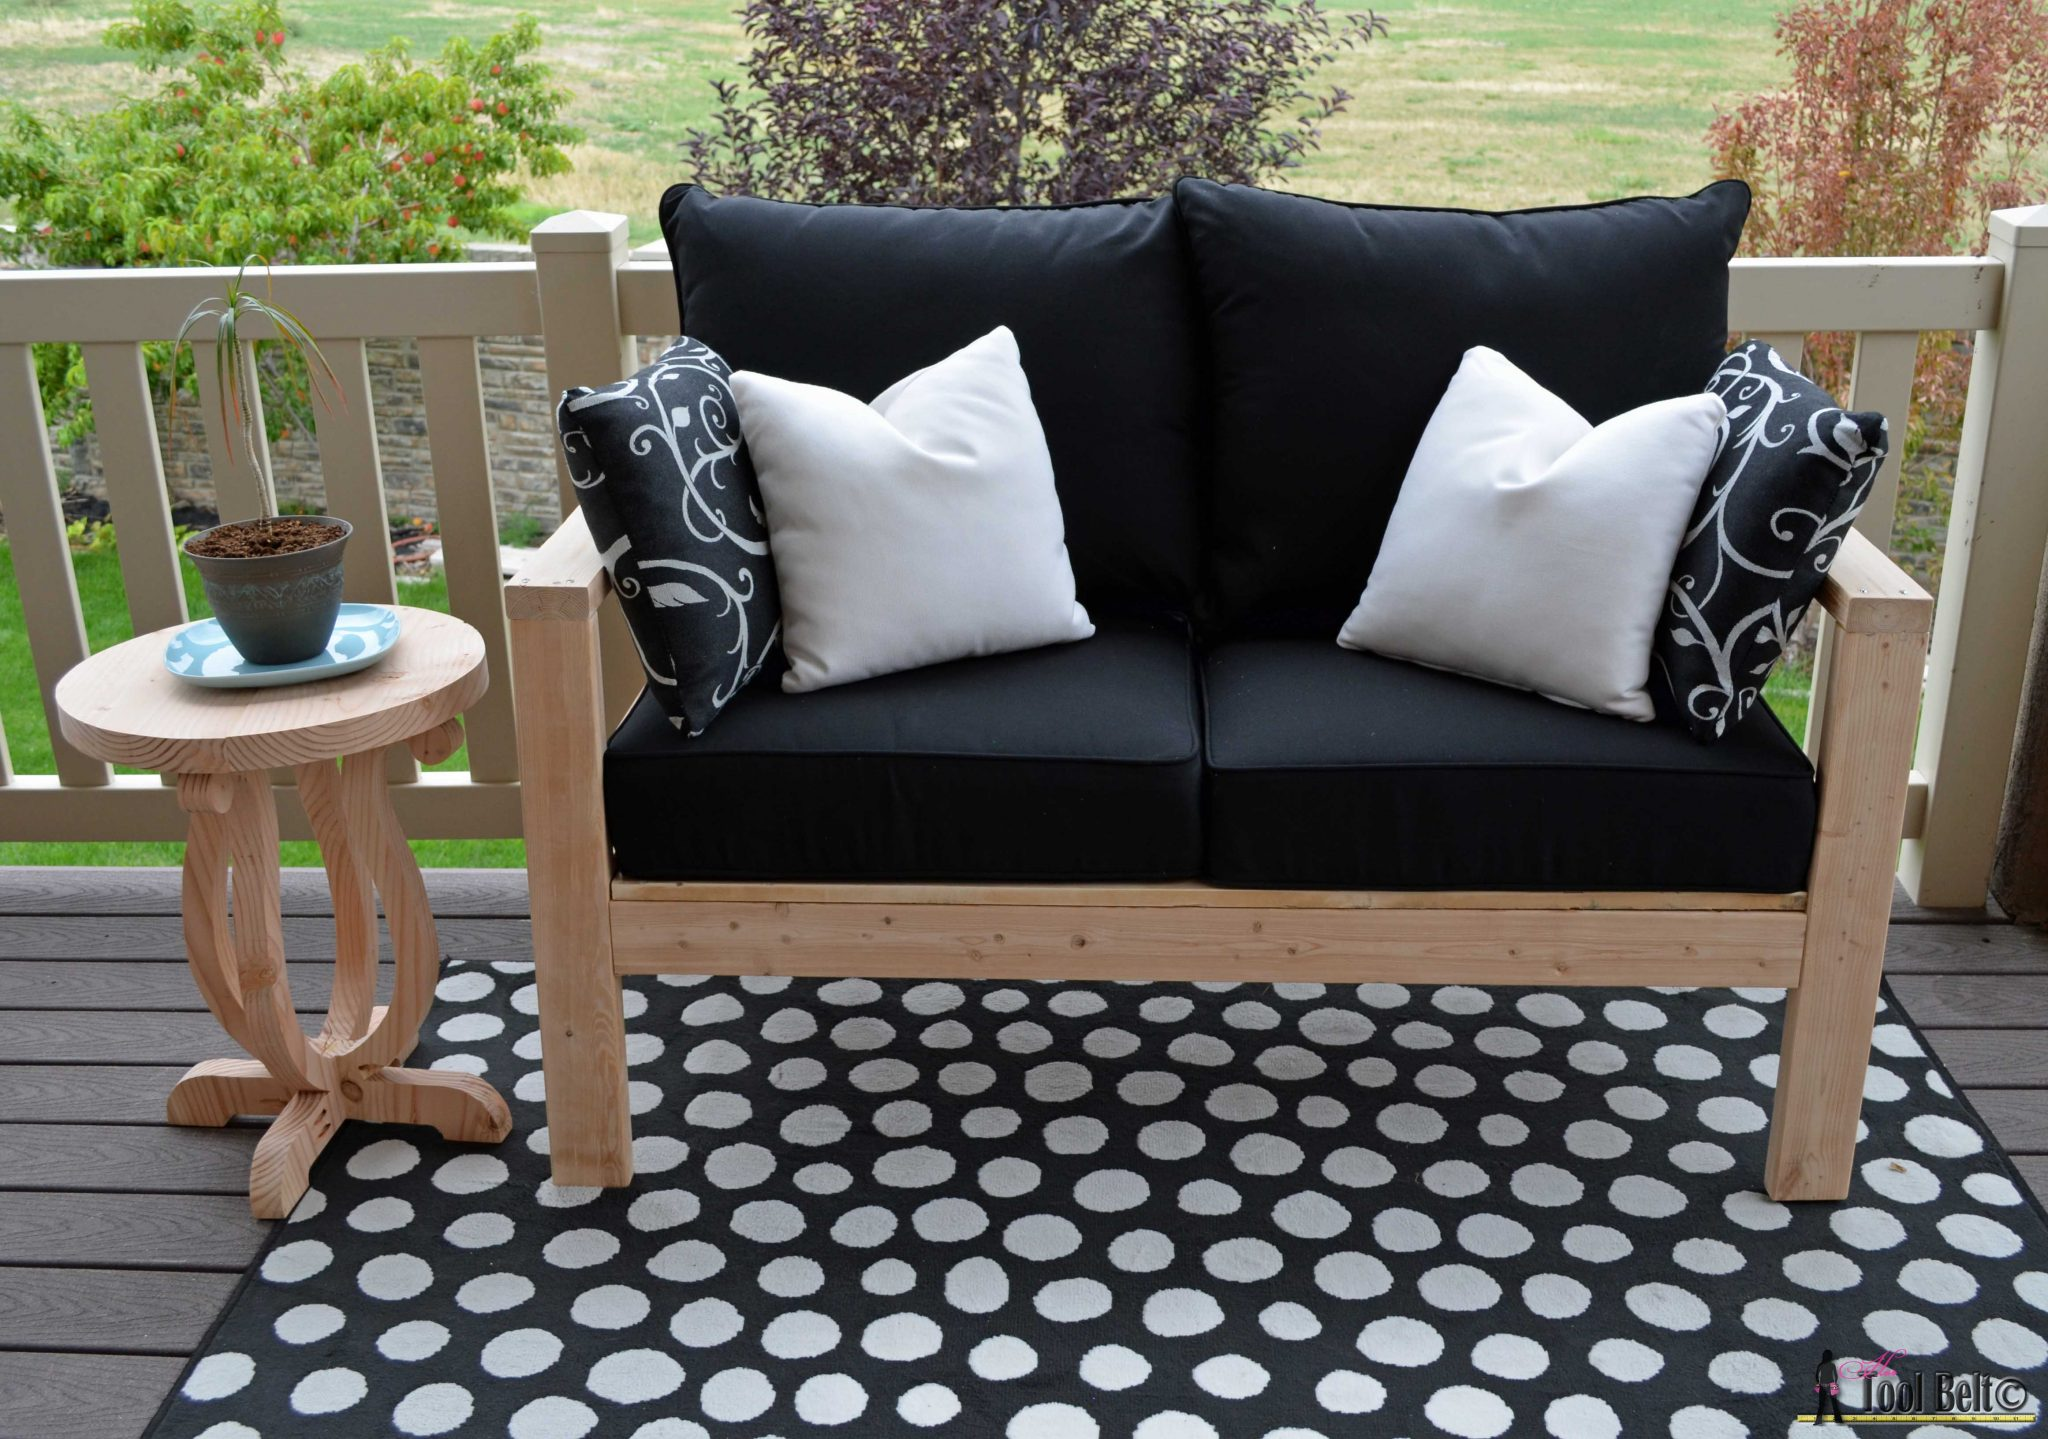 New Diy Patio Furniture Plans